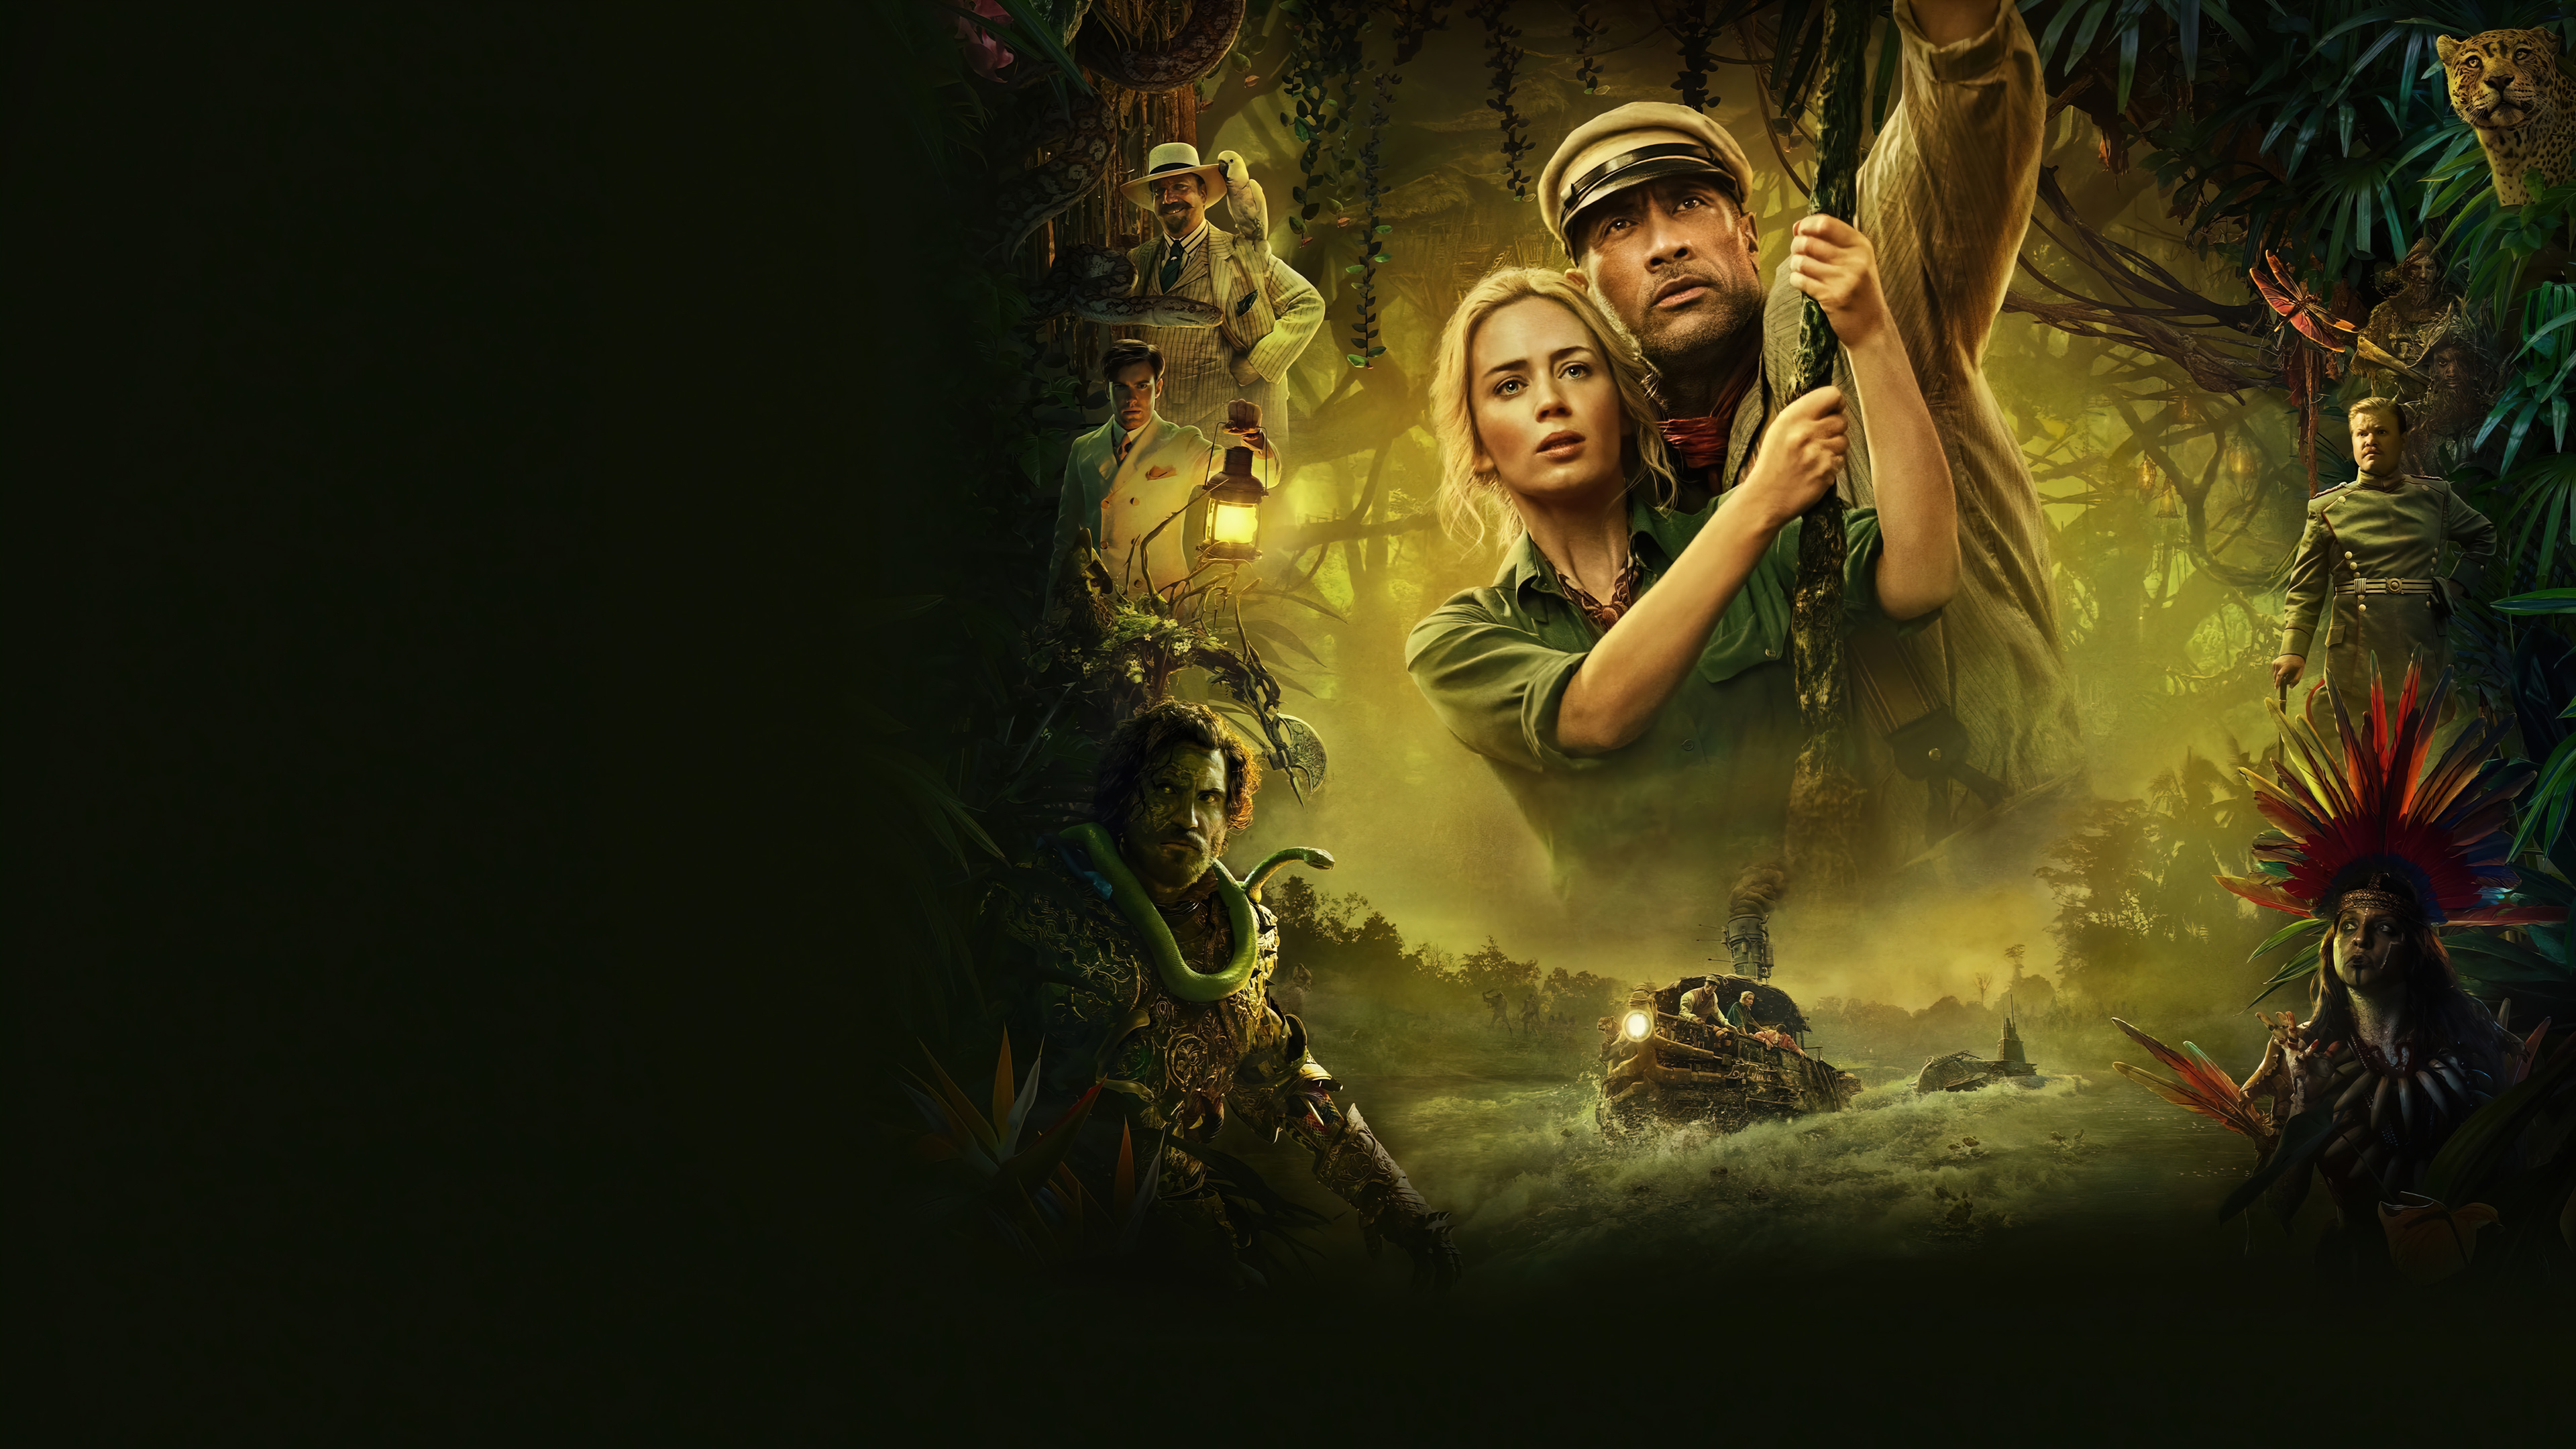 Wallpaper Emily Blunt and Dwayne Johnson in Jungle Cruise